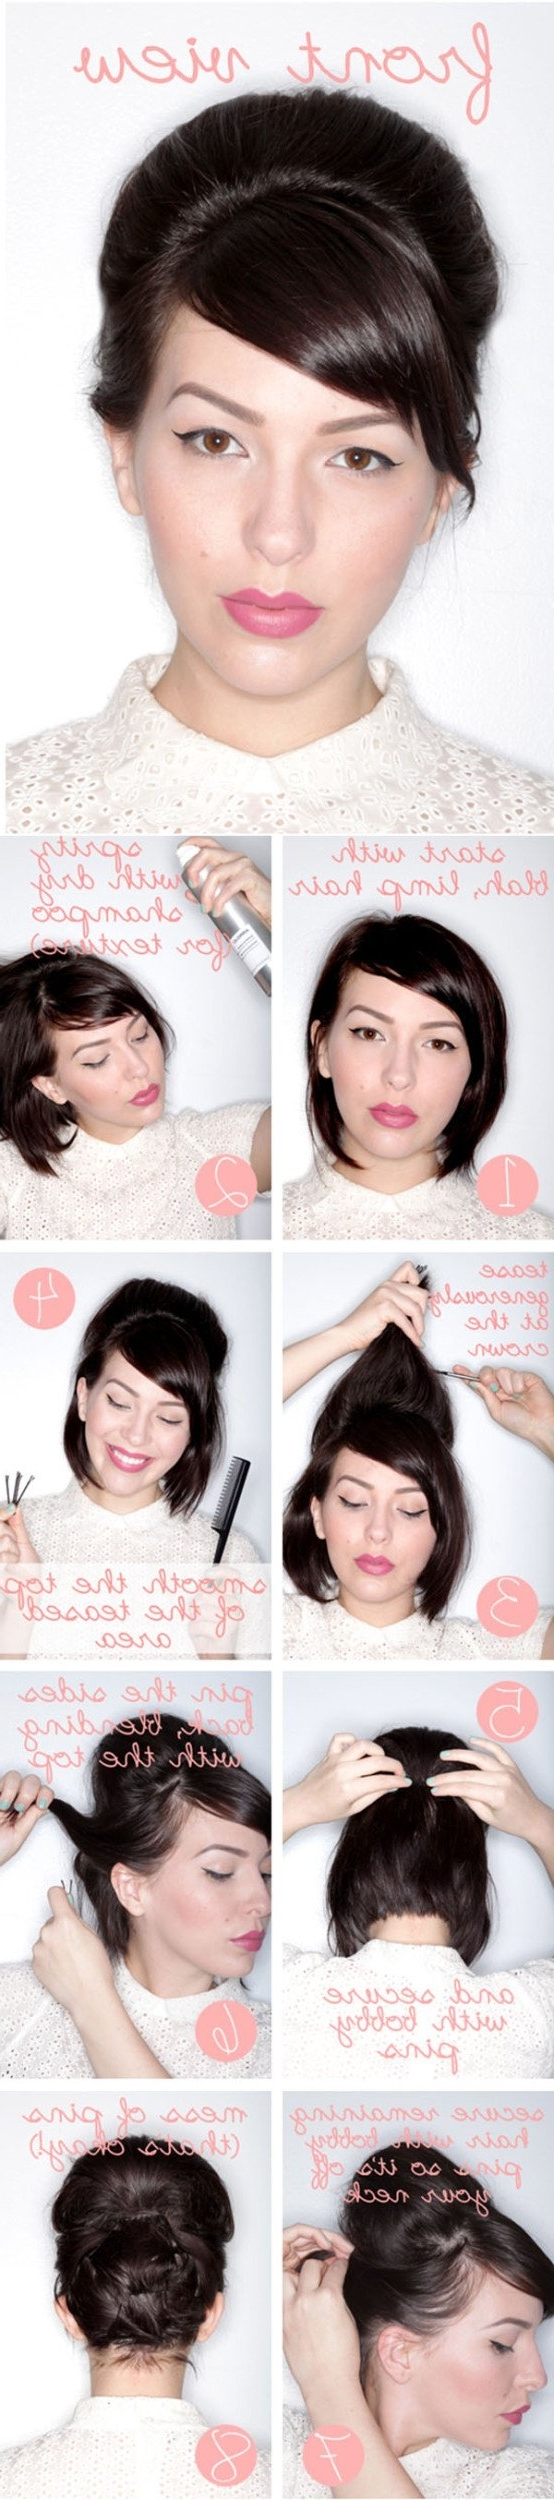 Easy Diy Tutorials For Glamorous And Cute Hairstyle Intended For Diy Updo Hairstyles For Long Hair (Gallery 15 of 15)